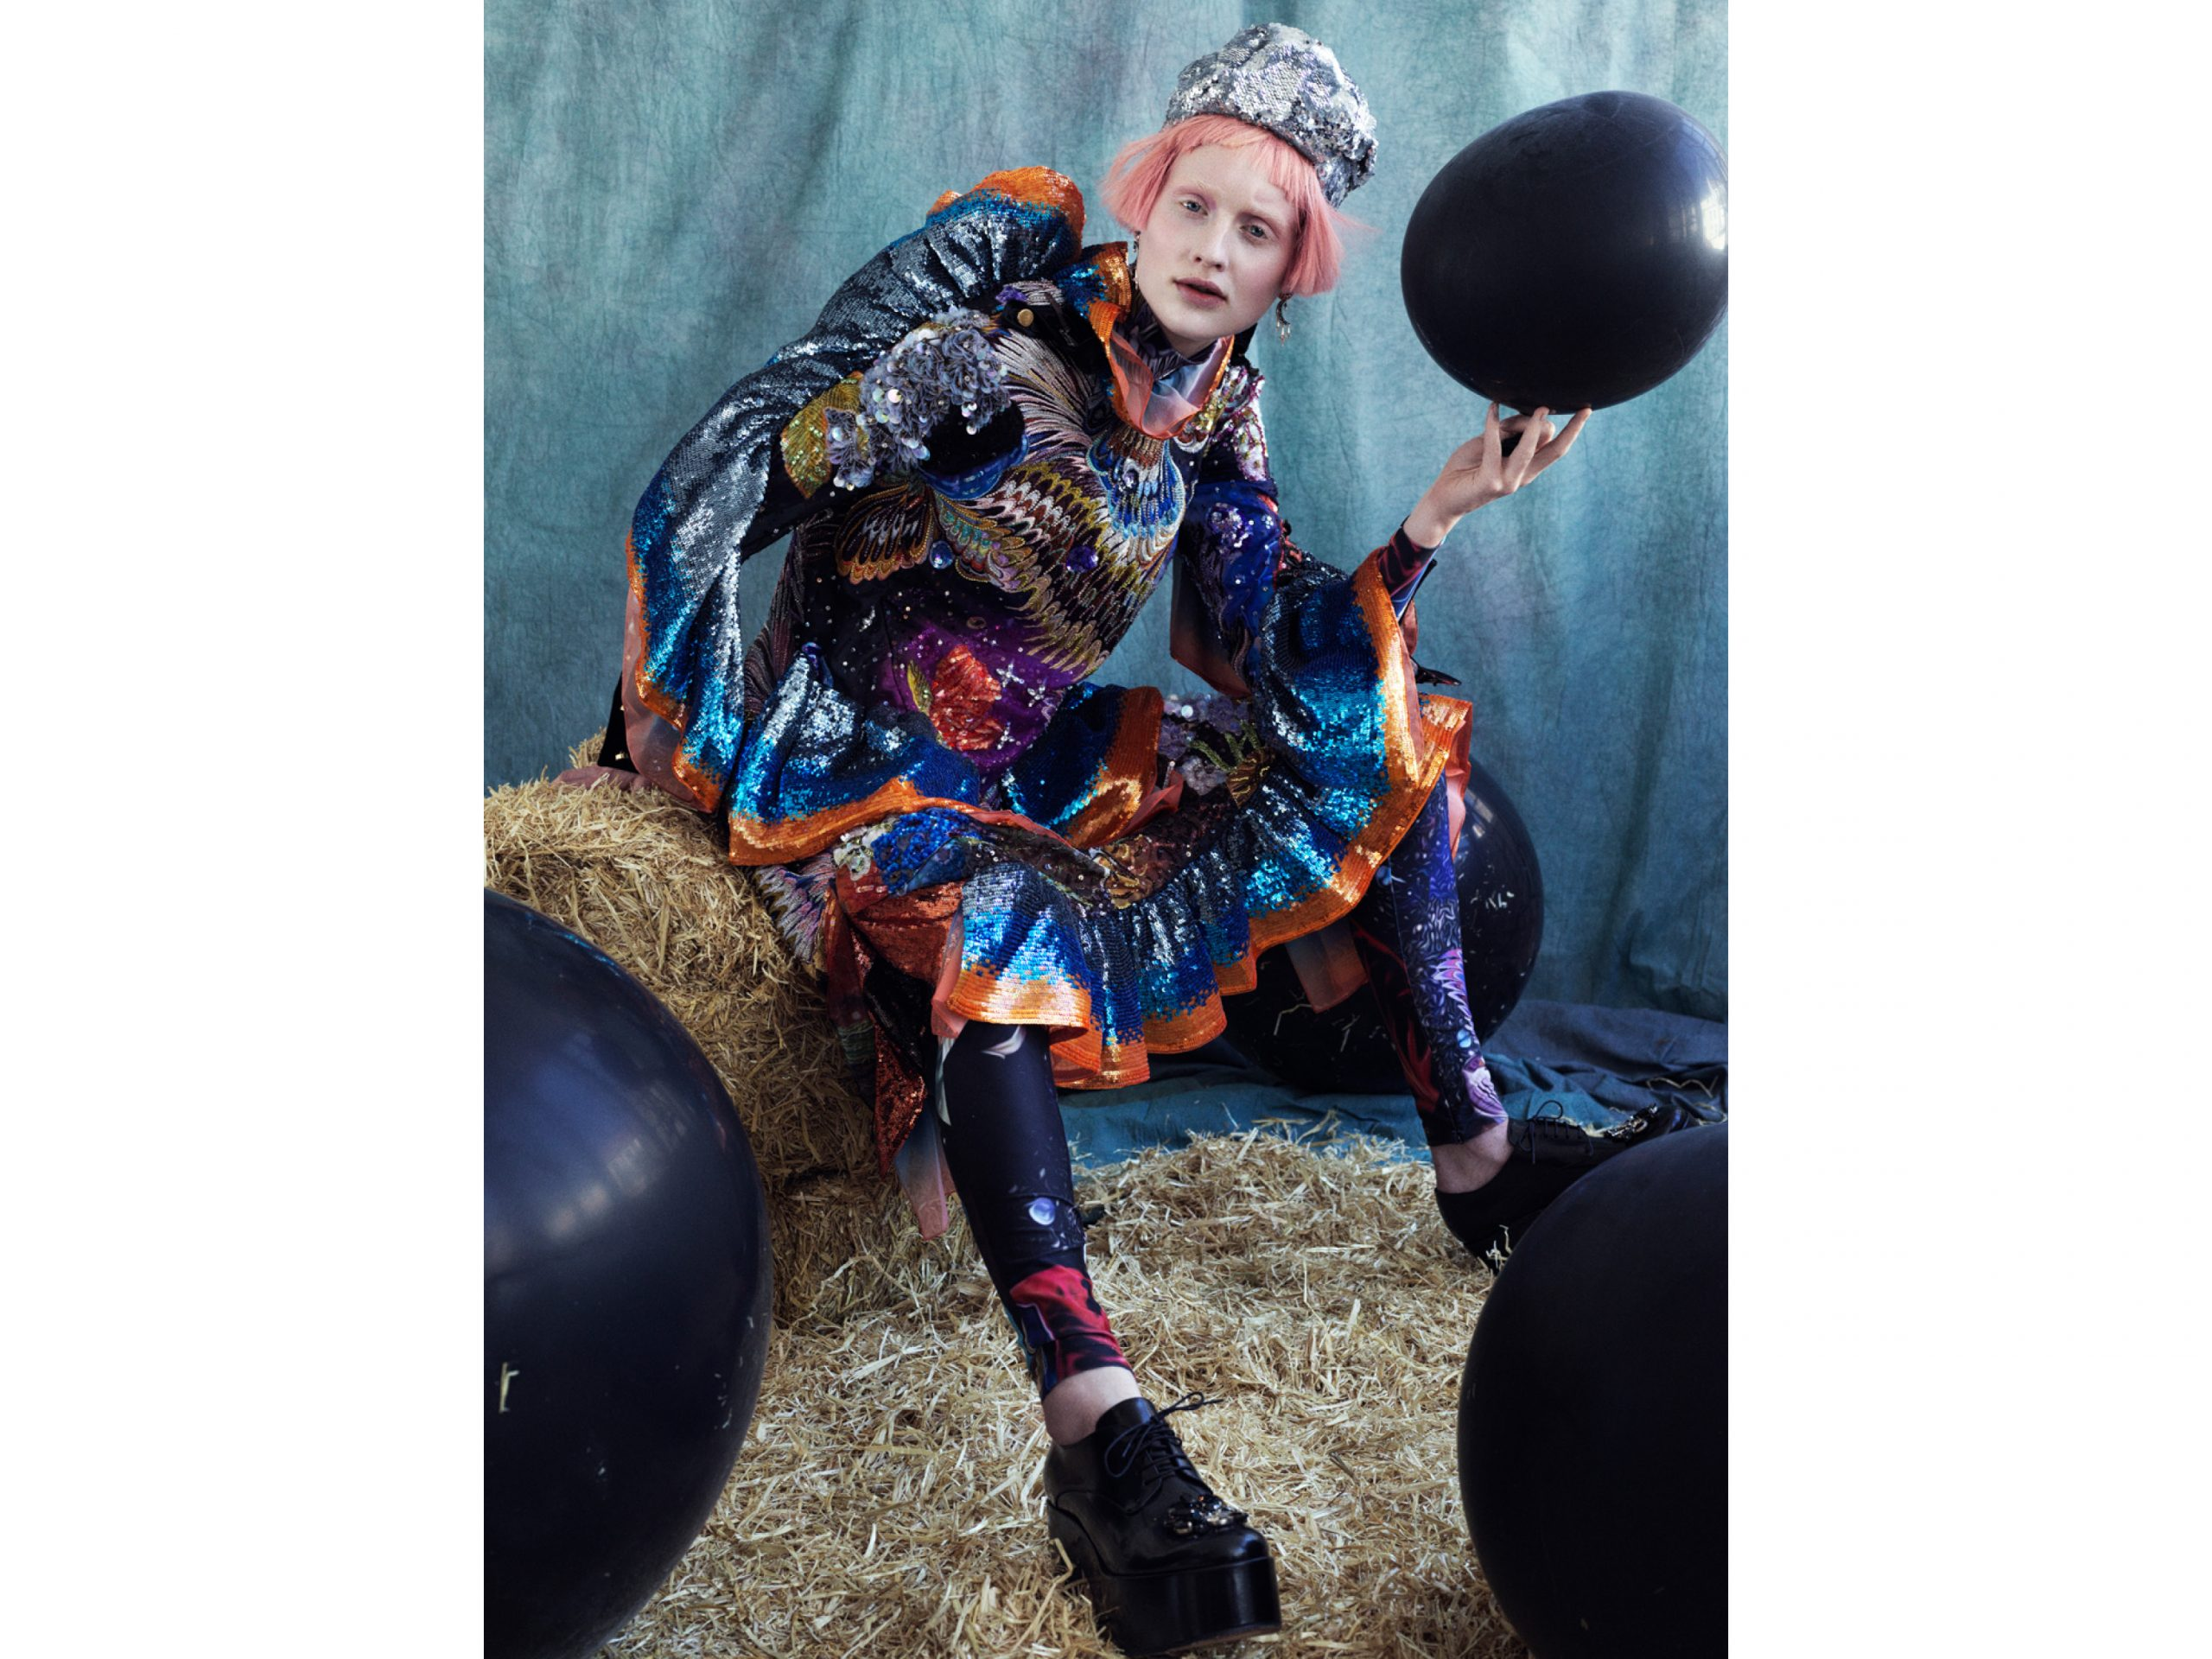 Julia_Muller_X_Vogue_Portugal _Circus_EE_Agency